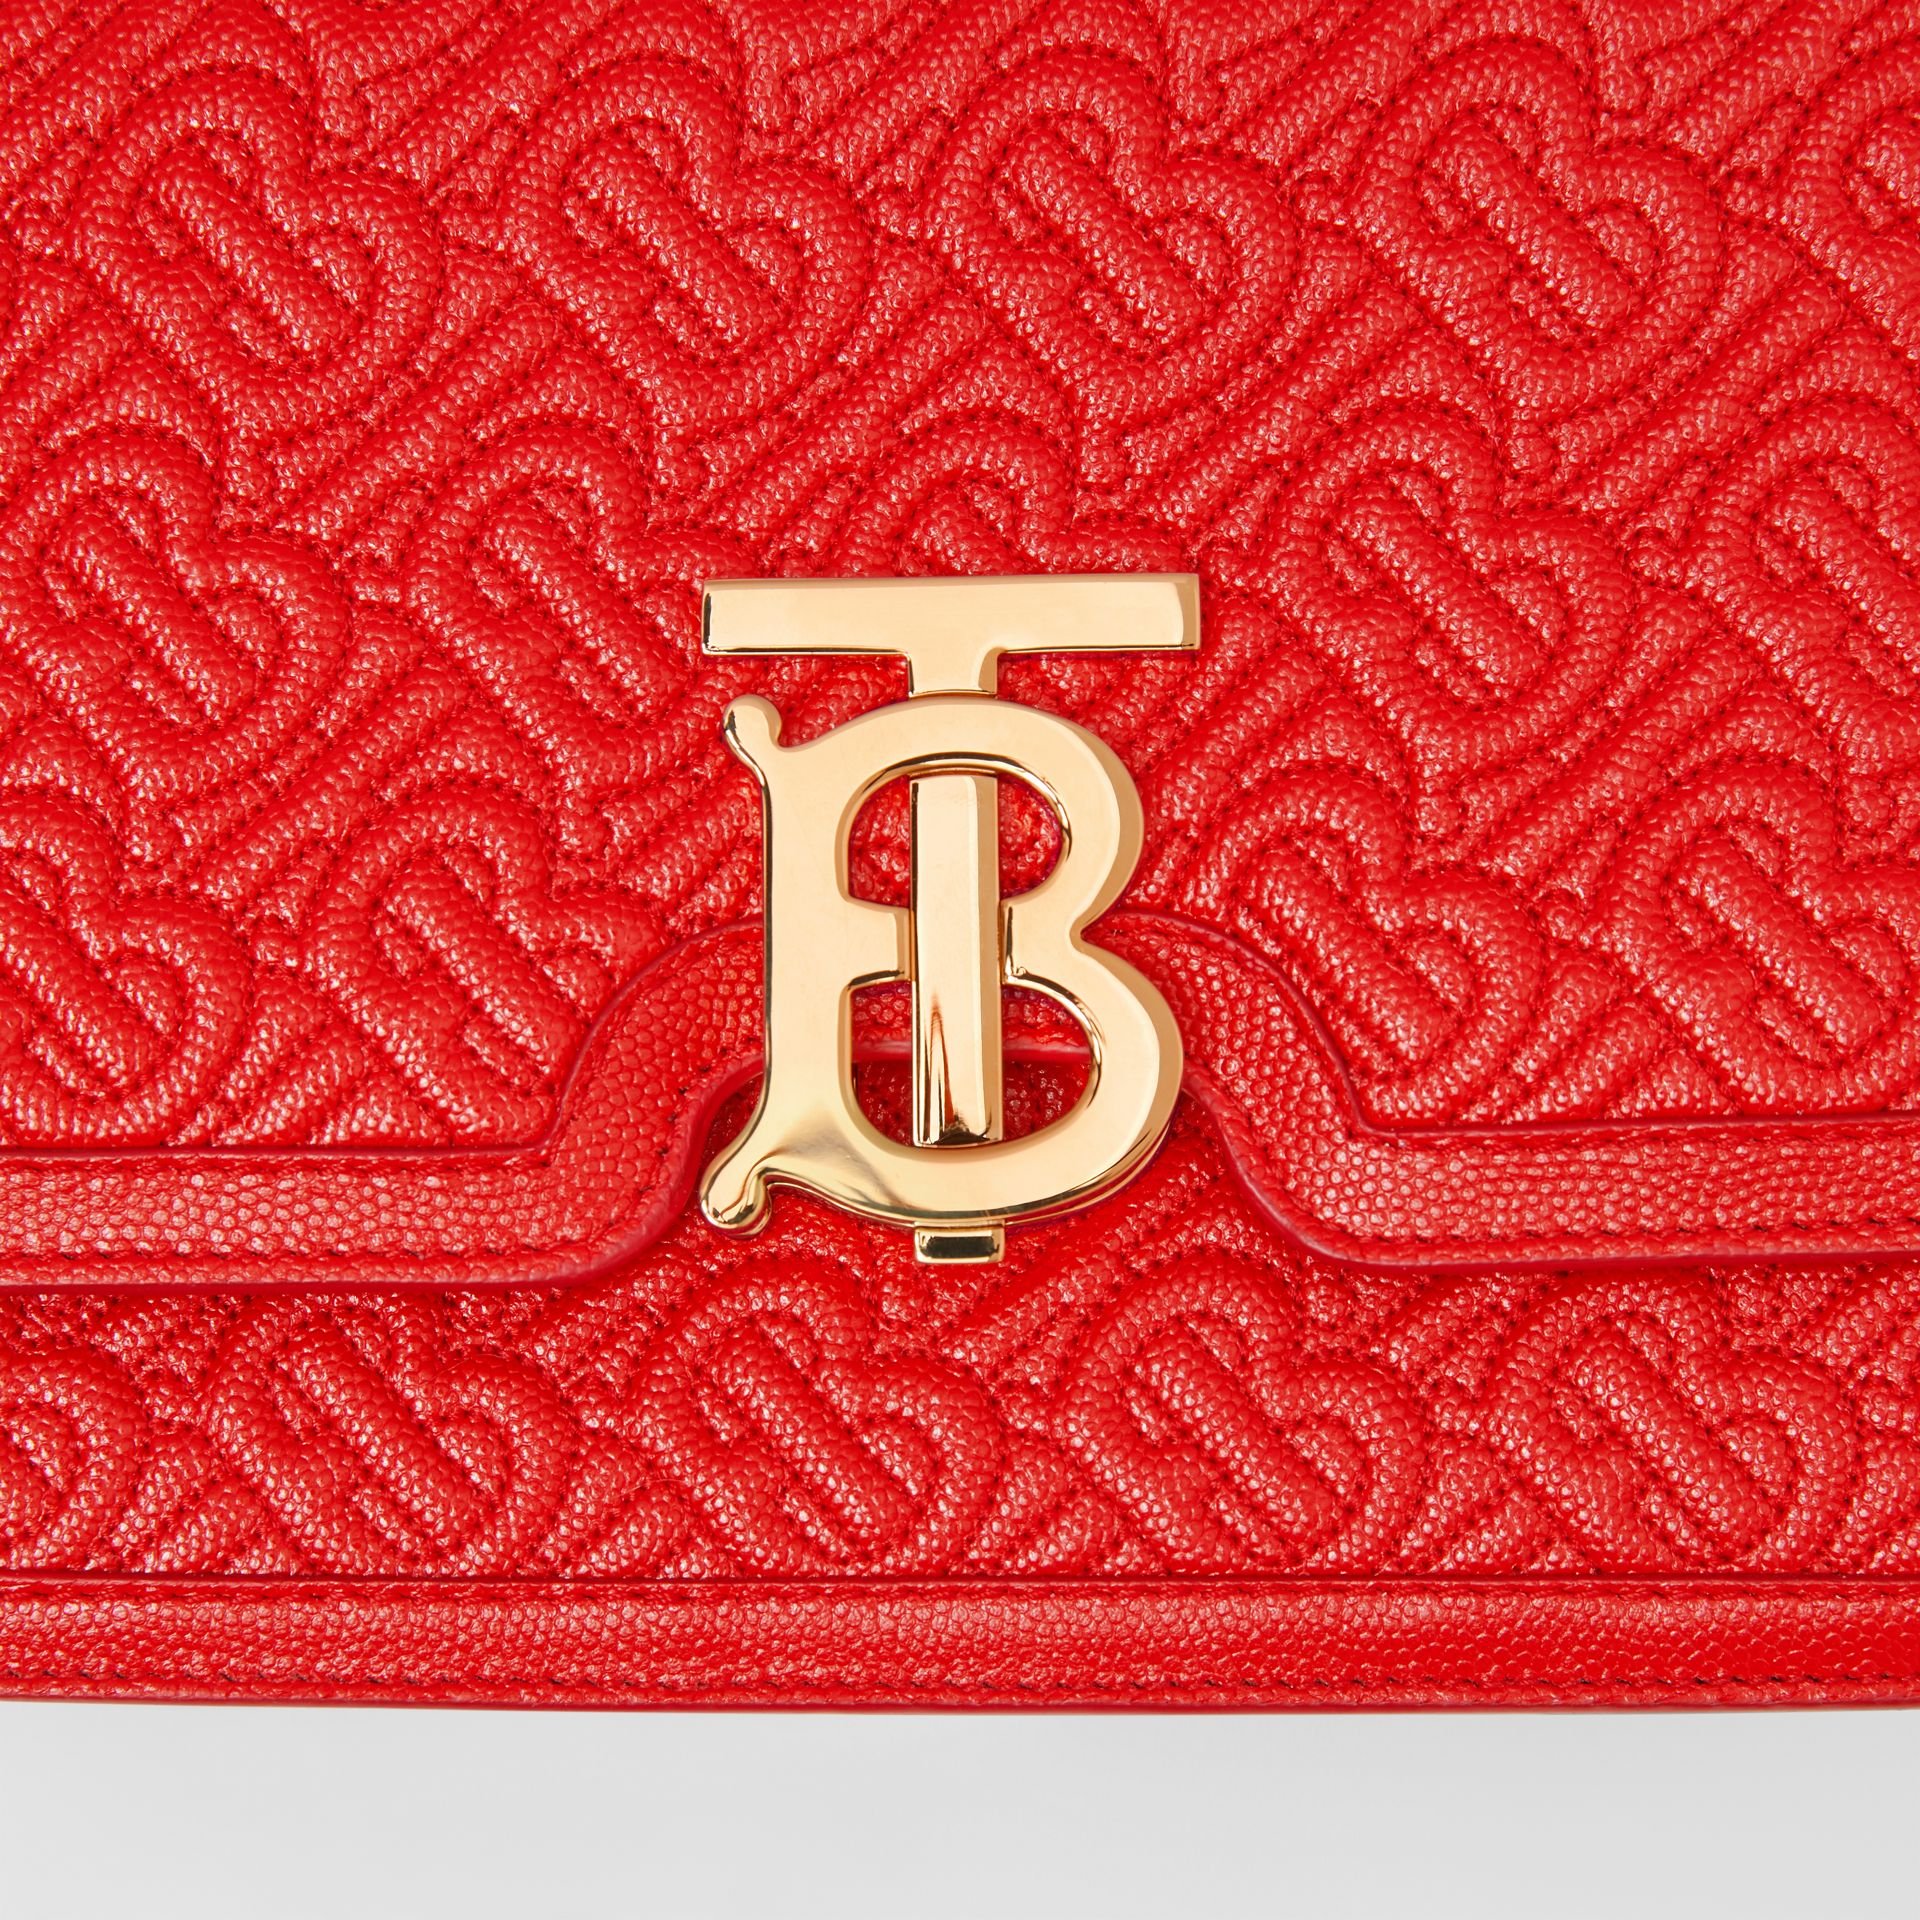 Small Quilted Monogram Leather TB Bag in Bright Red - Women   Burberry - gallery image 1